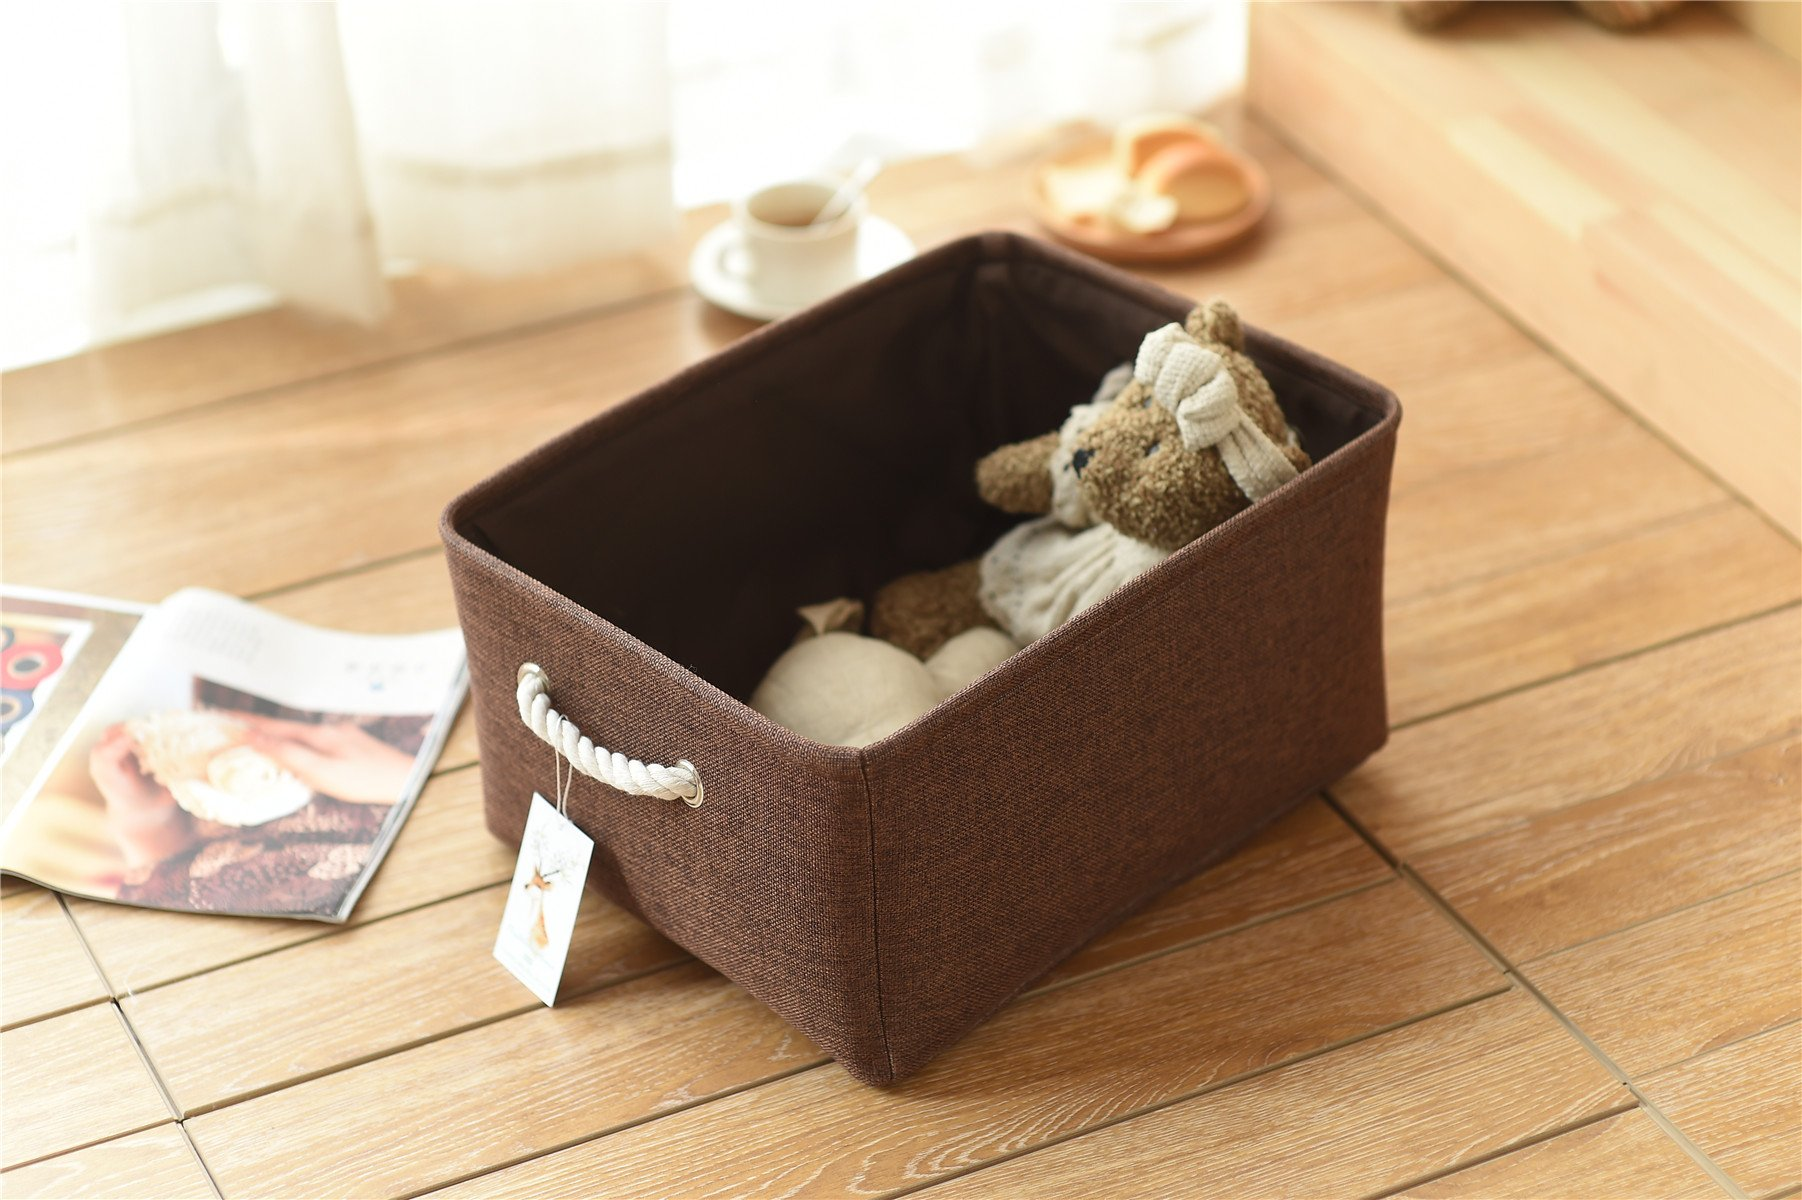 TheWarmHome Rectangle Fabric Storage Basket with Rope Handles Baskets for Shelves,Clothes Storage,Magazine Basket,Baskets for Gifts Empty,Linen Basket for Living Room,Brown by TheWarmHome